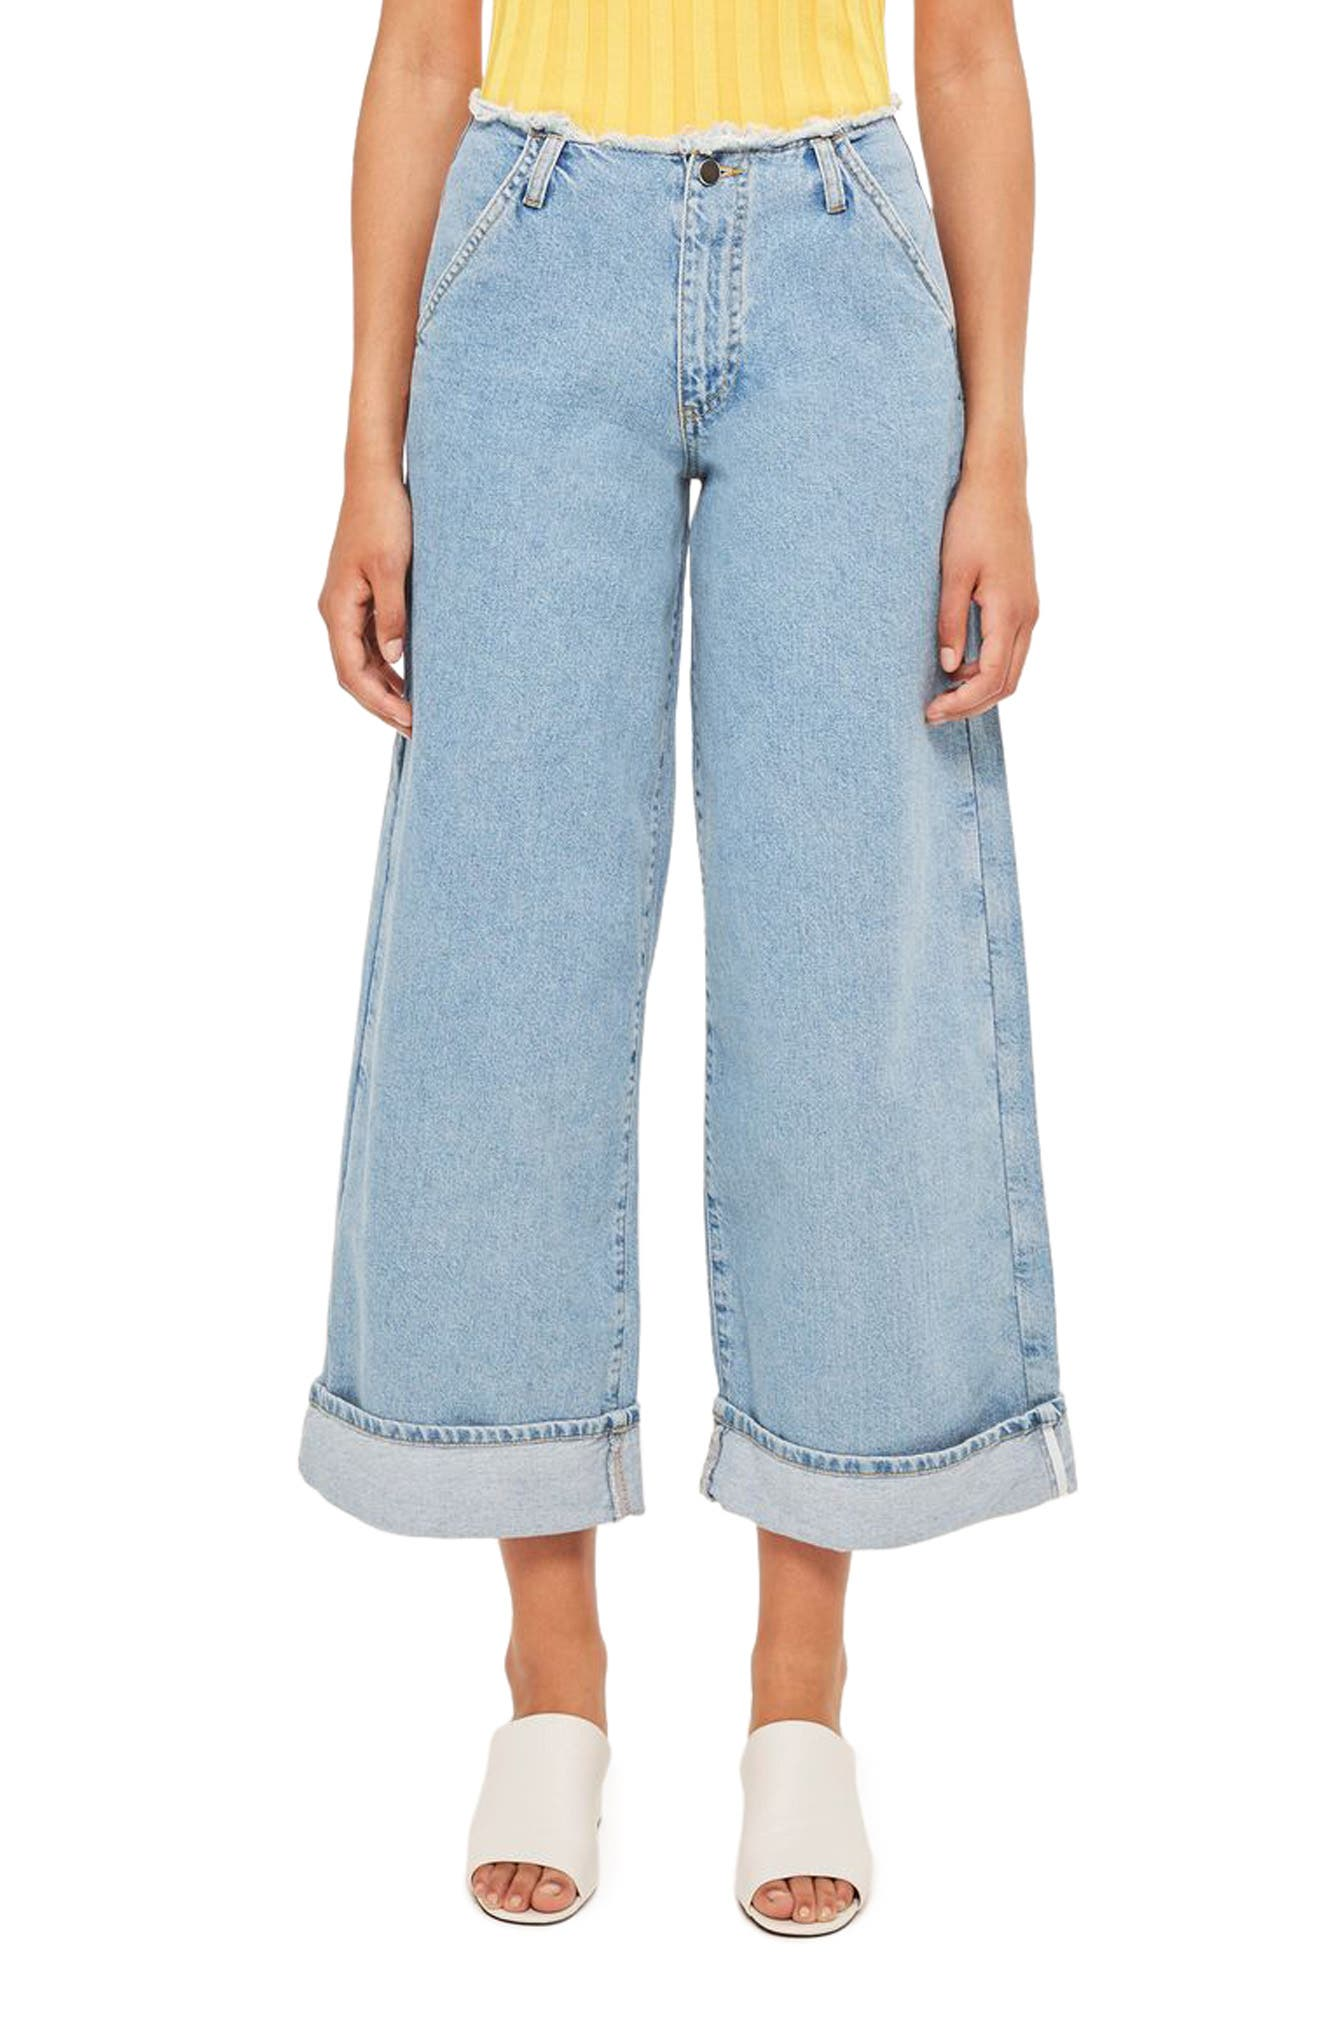 Topshop Boutique Frayed Waist Super Wide Leg Jeans